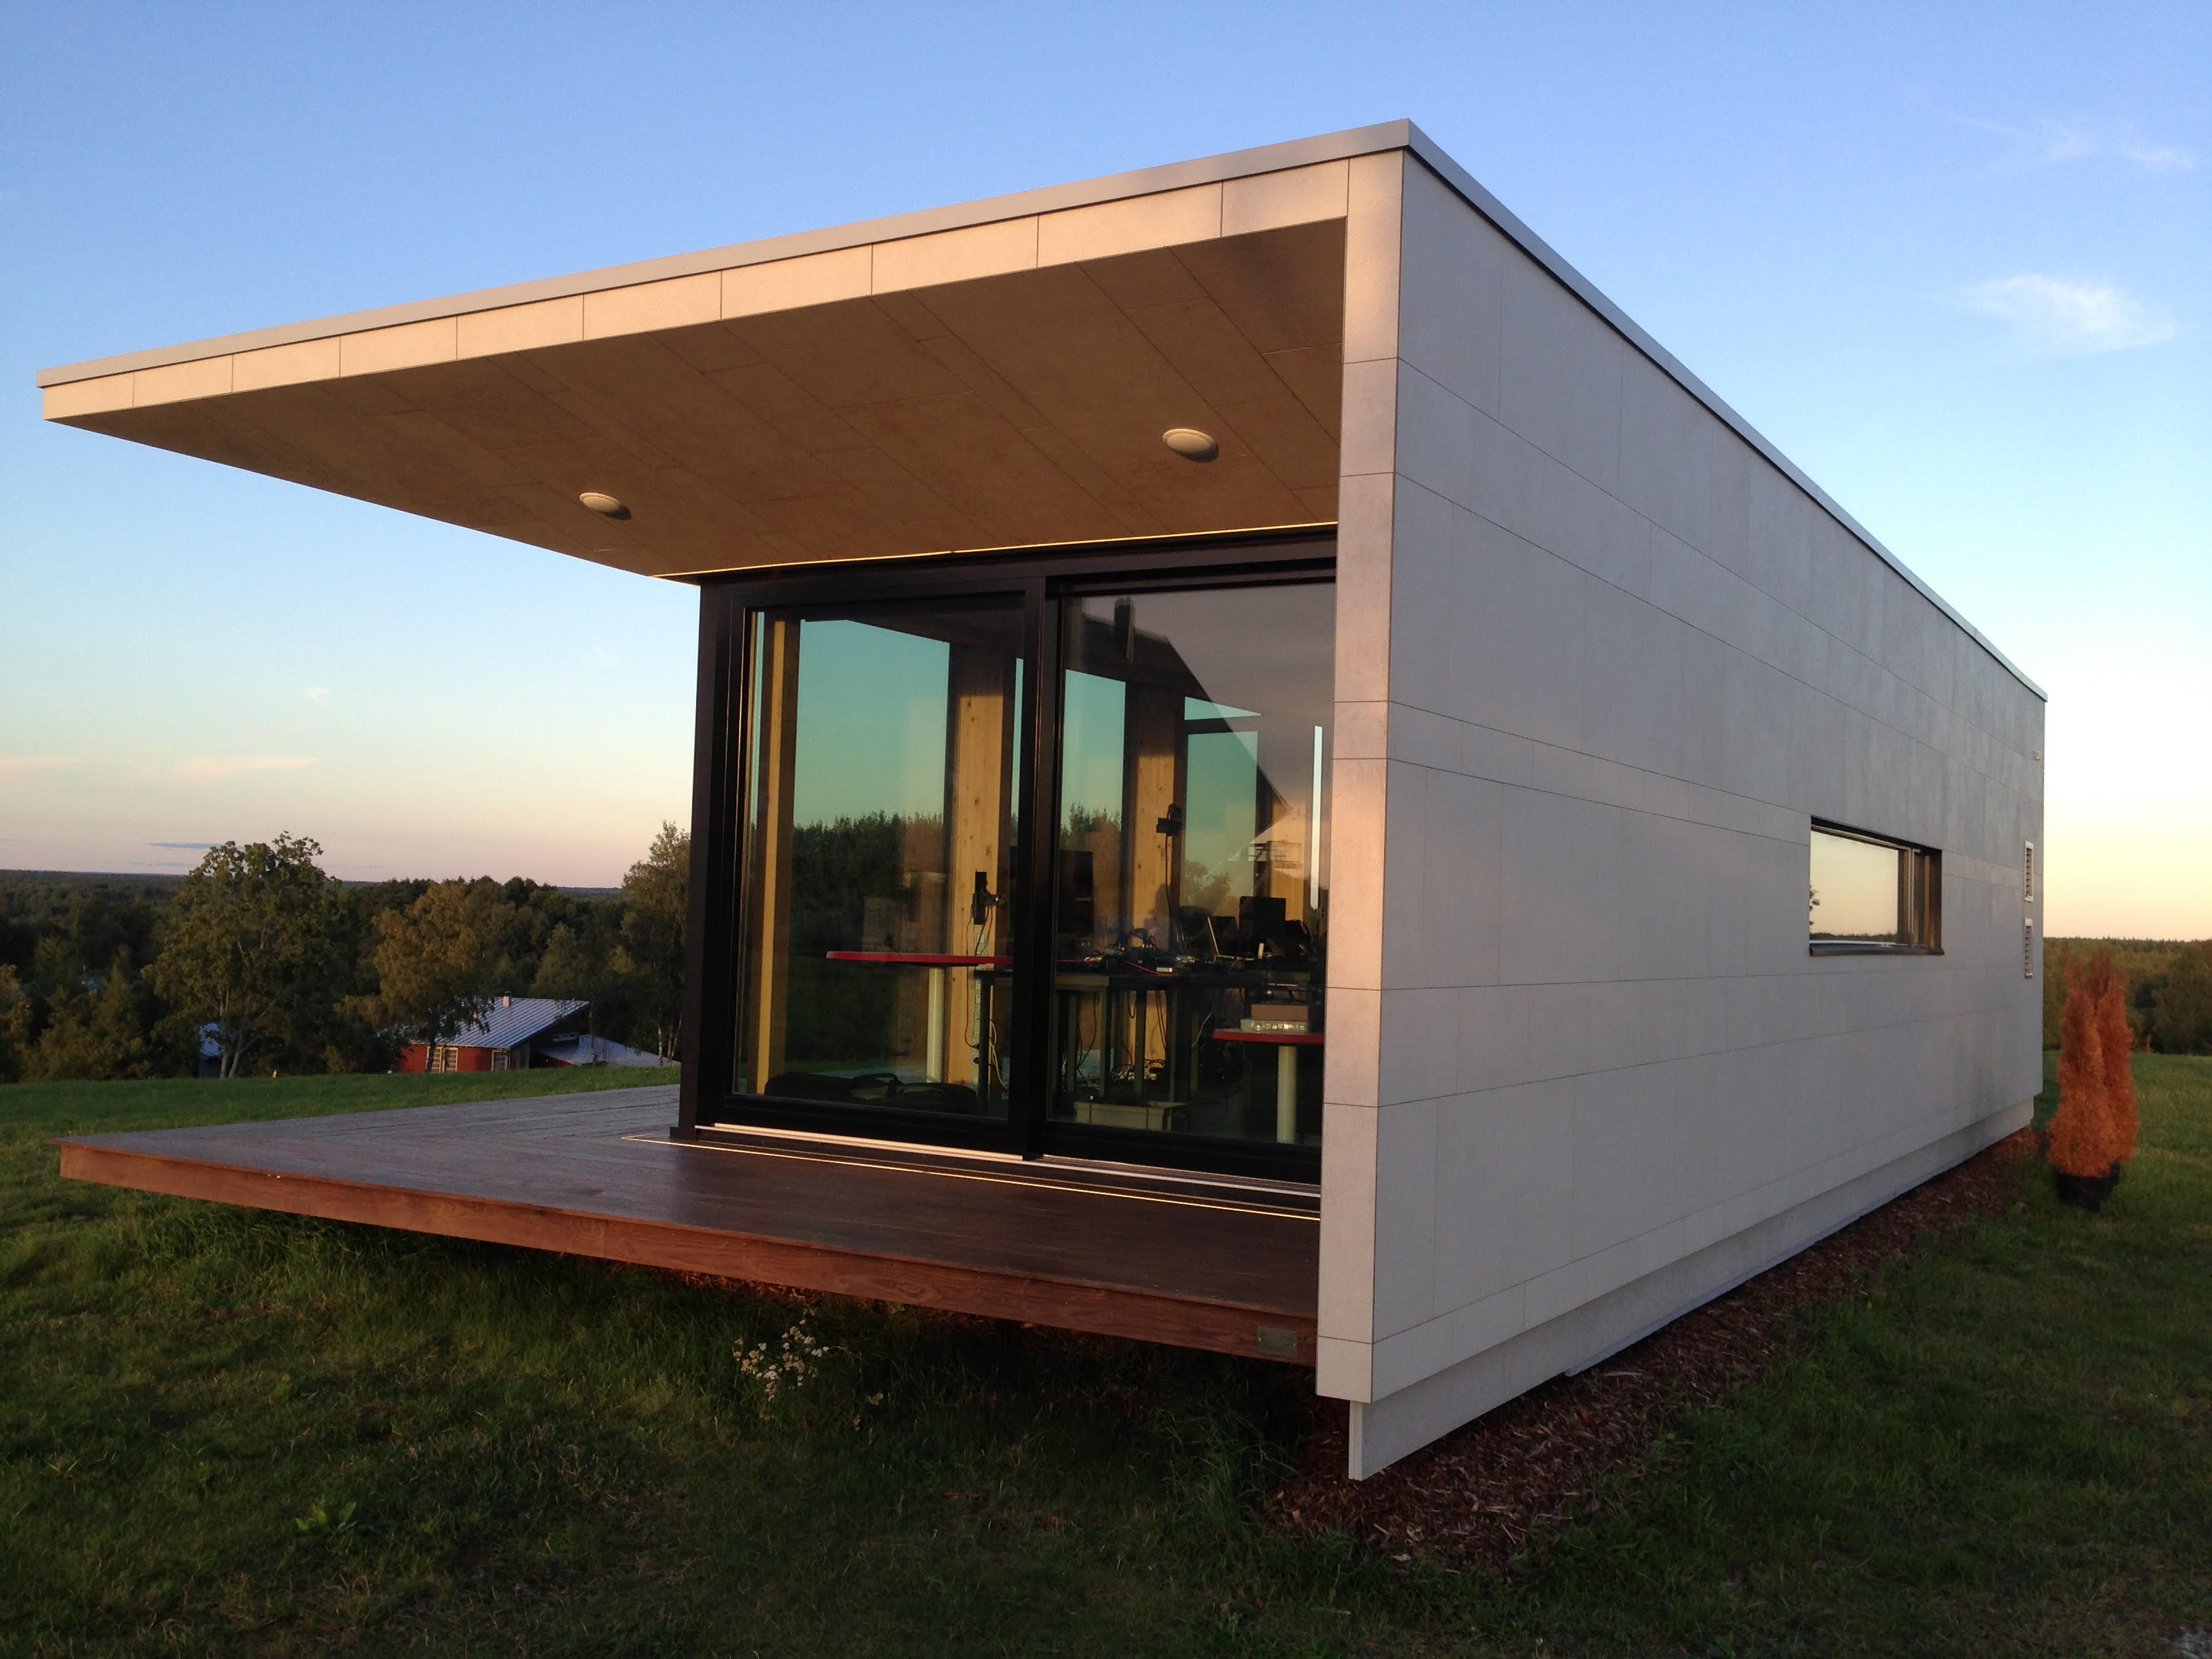 A modular home with a glass facade sits in a field with trees in the background